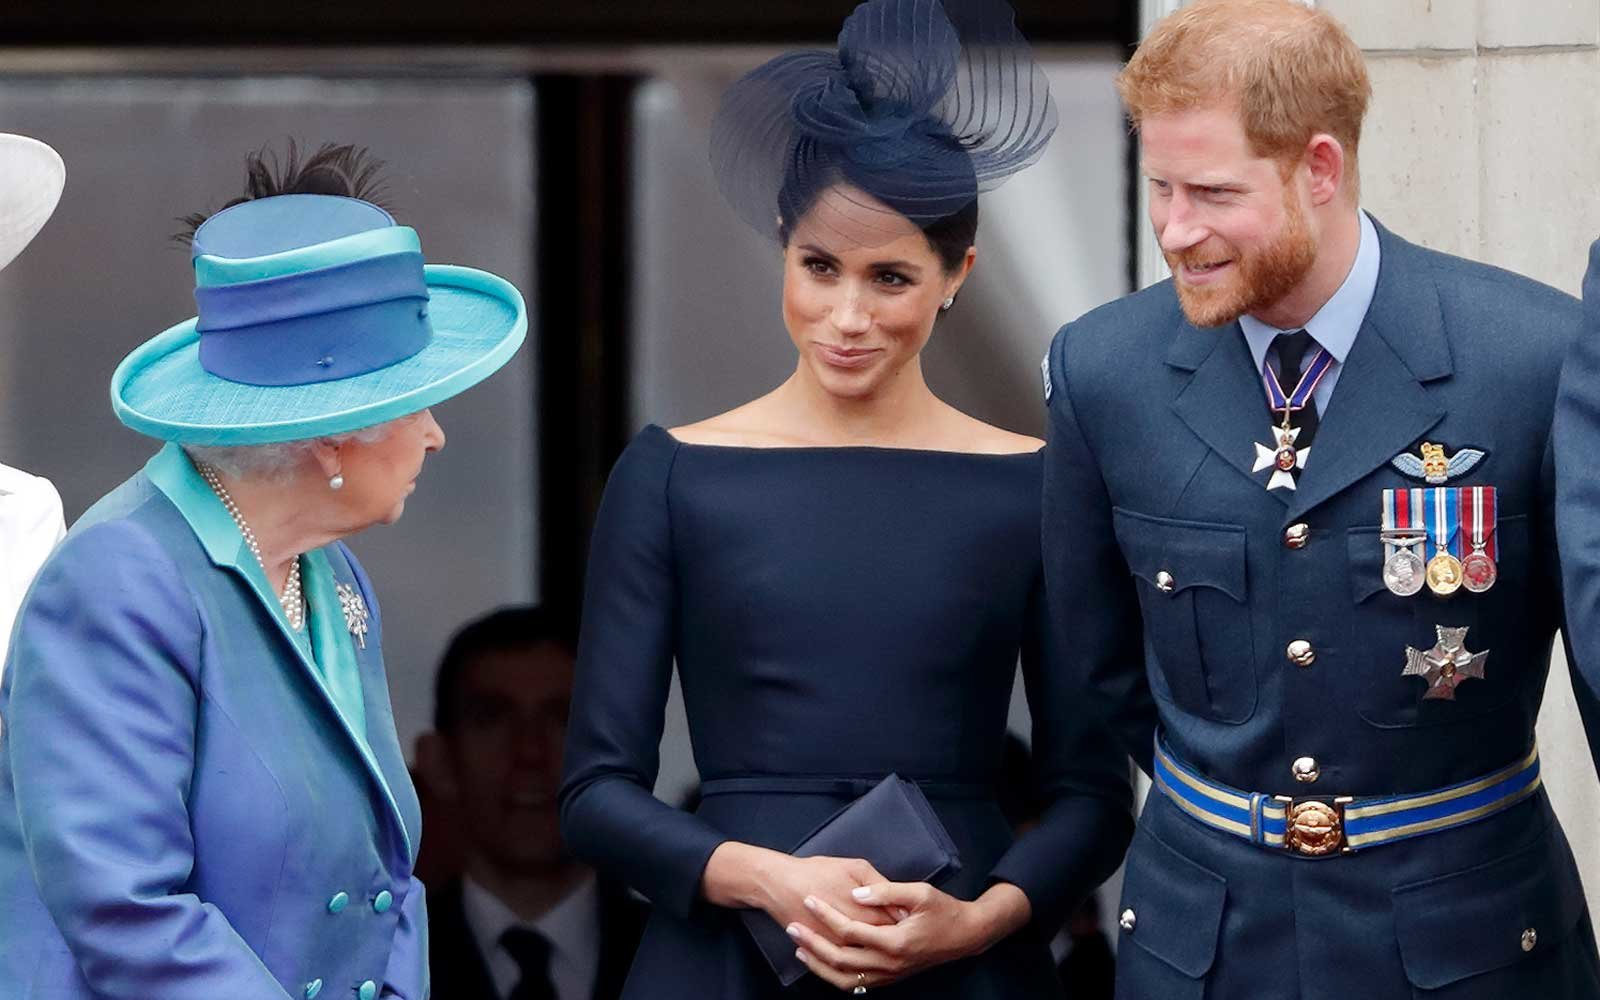 Queen Elizabeth II, Meghan, Duchess of Sussex and Prince Harry, Duke of Sussex